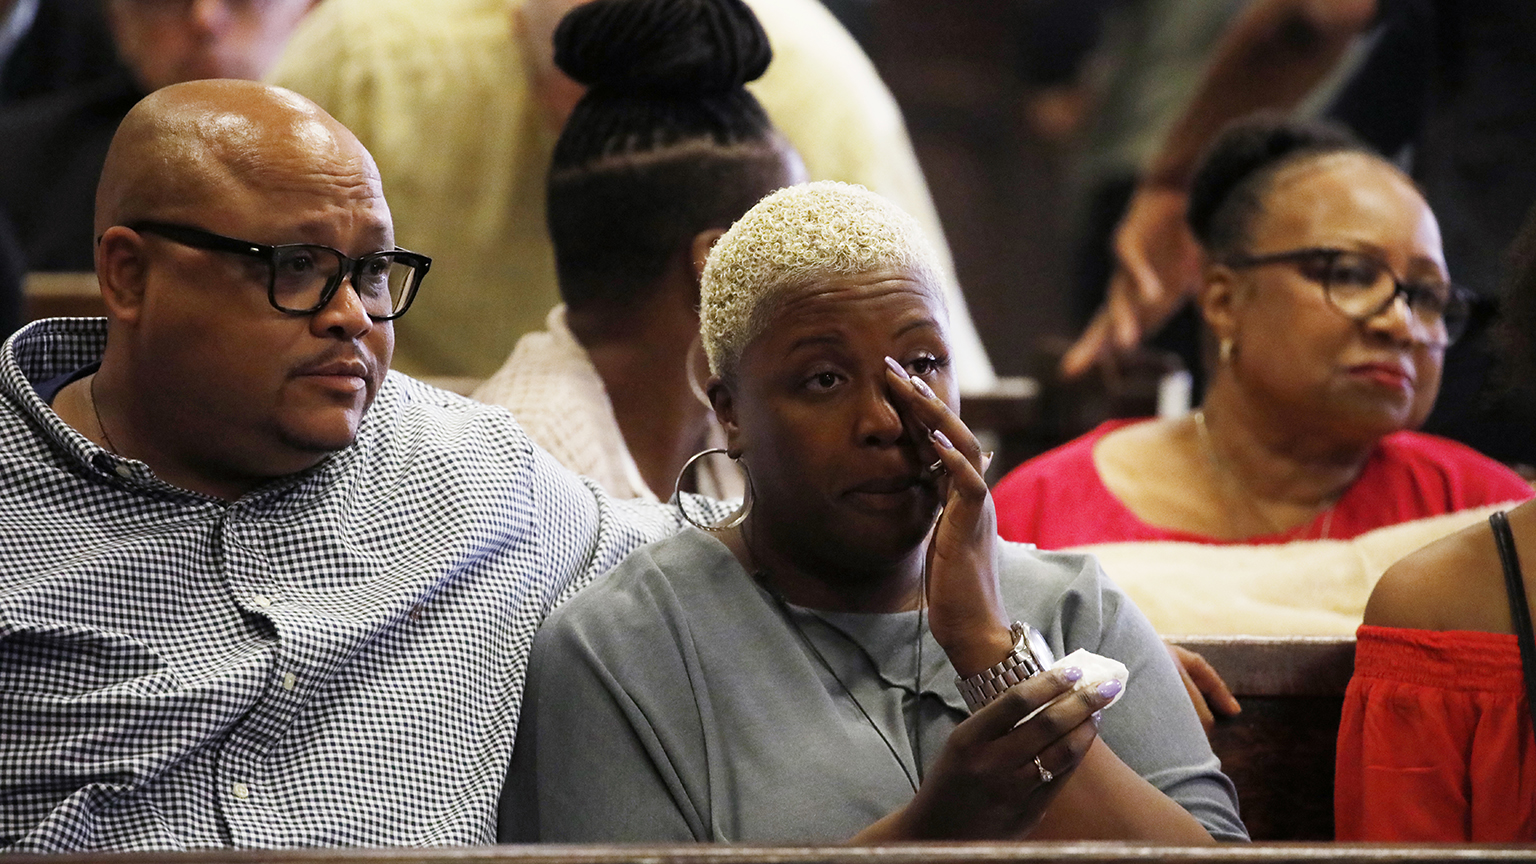 Nathaniel Pendleton Sr. and Cleopatra Cowley, parents of Hadiya Pendleton, listen to closing arguments in the Micheail Ward case during the trial for the fatal shooting of Hadiya Pendleton at the Leighton Criminal Court Building in Chicago on Aug. 23, 2018. (Jose M. Osorio / Chicago Tribune / Pool)